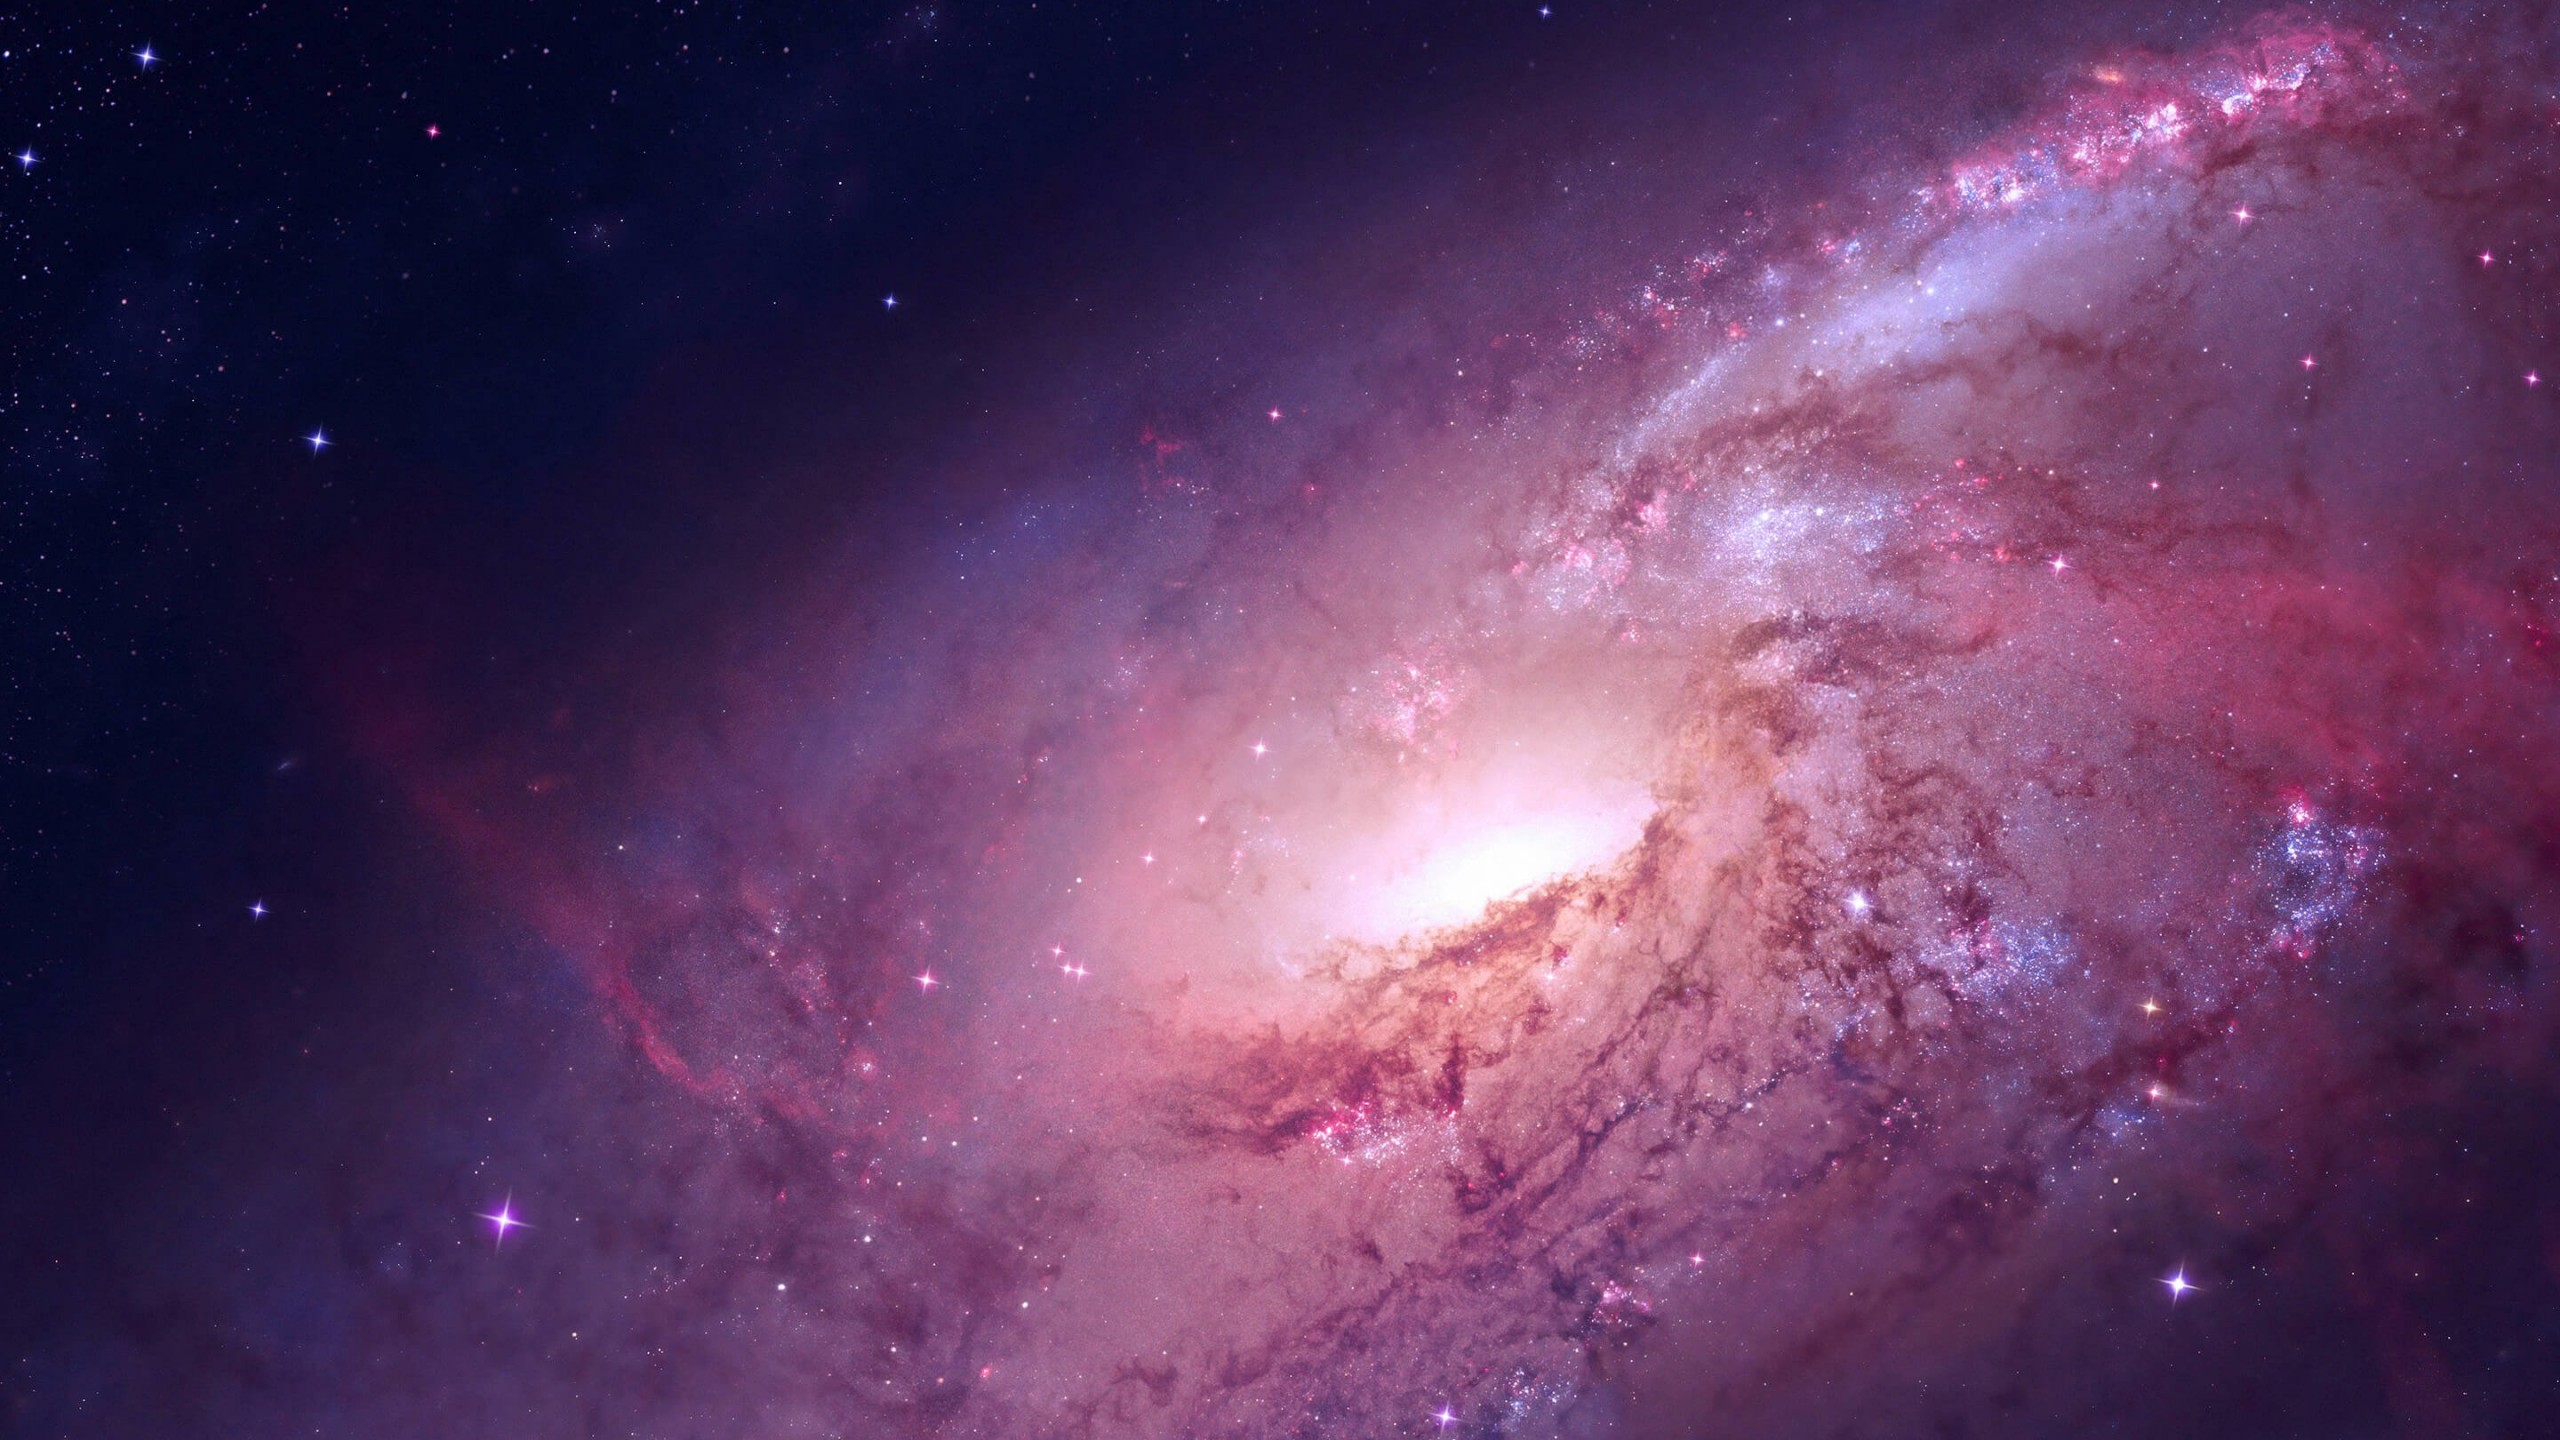 Galaxy M106 Wallpaper for Desktop 2560x1440